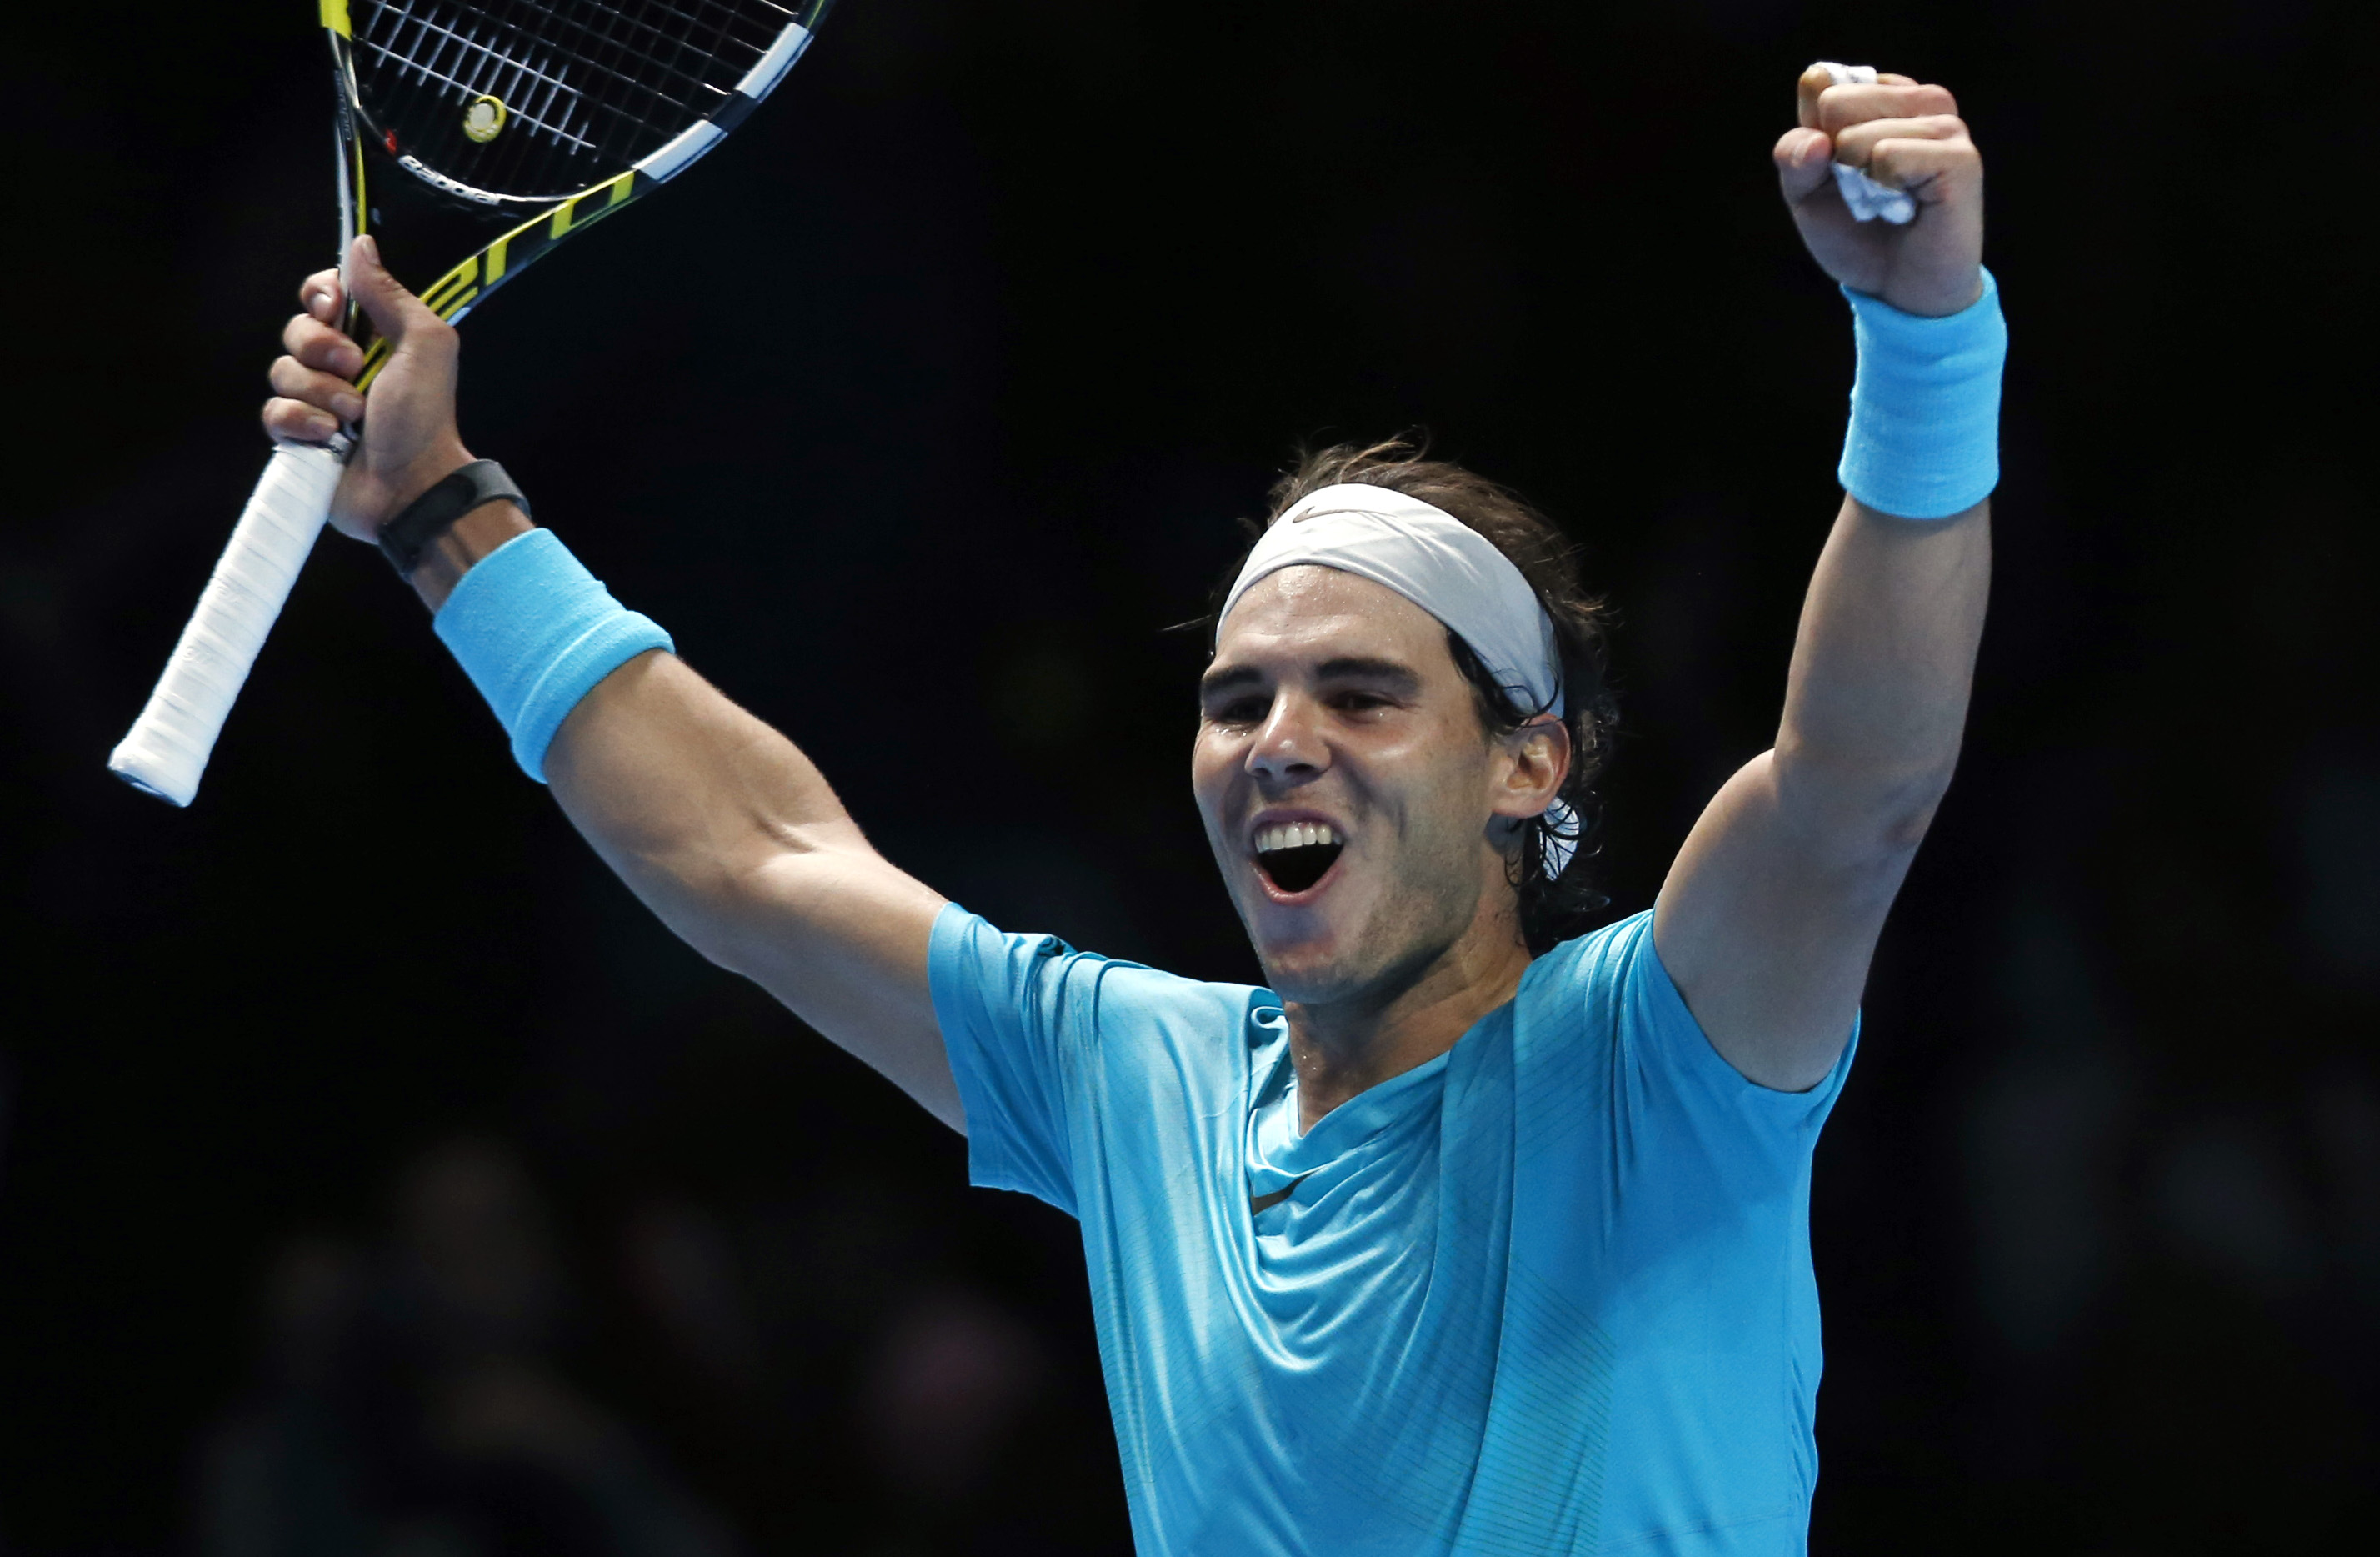 Rafael Nadal of Spain celebrates after winning the ATP World Tour Finals singles tennis match against Stanislas Wawrinka of Switzerland at the O2 Arena in London Wednesday, Nov. 6, 2013